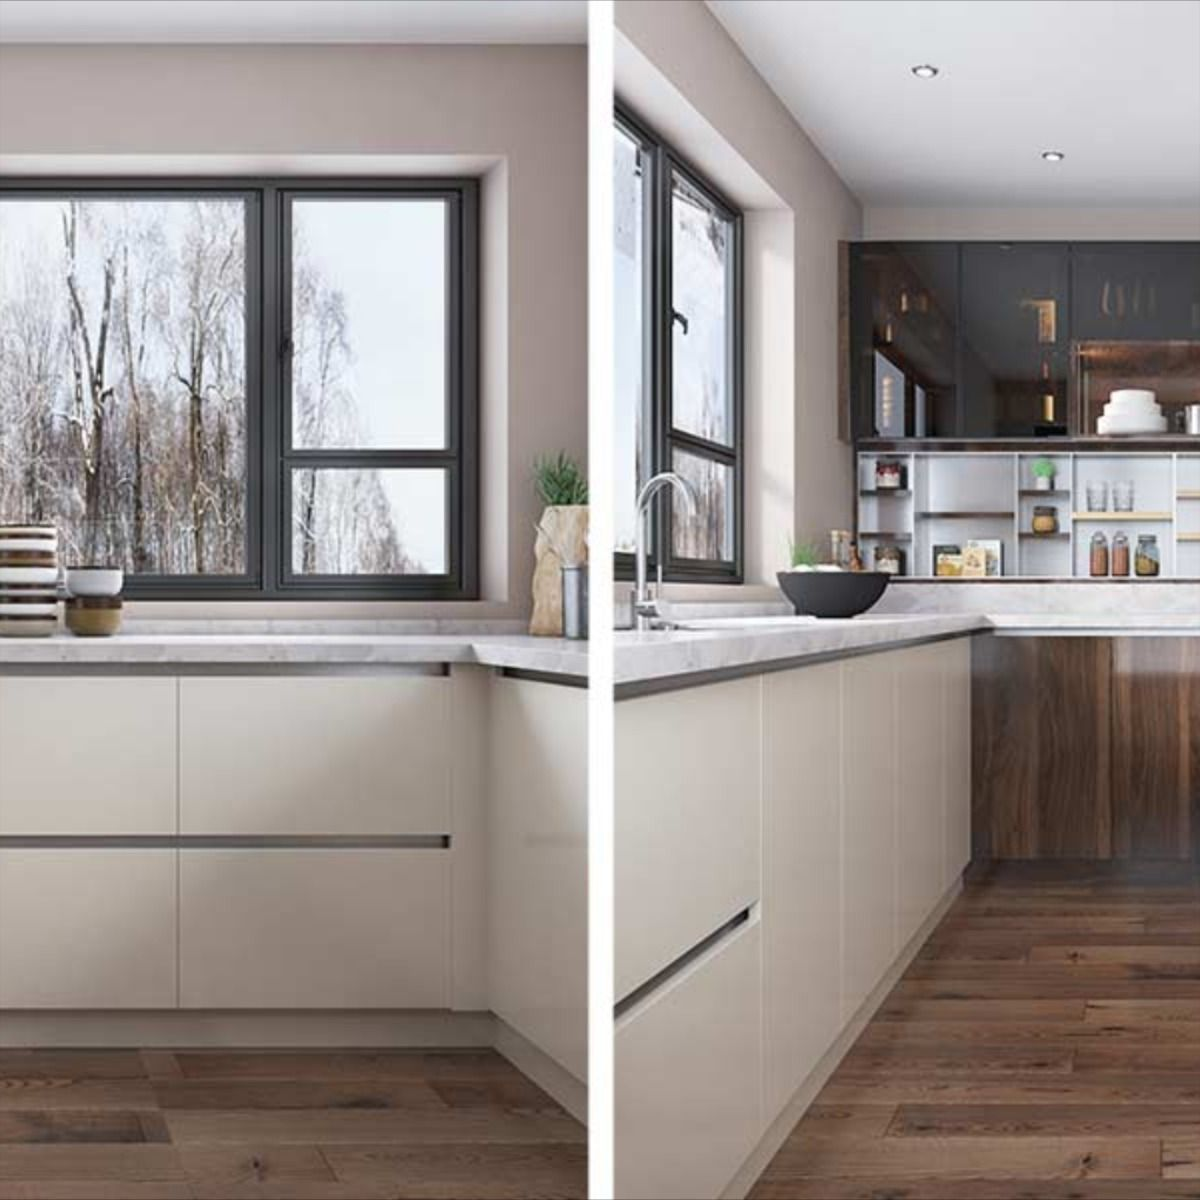 Nl Furniture Wood Brown High Gloss Uv Lacquer Kitchen Cabinet In 2020 Kitchen Cabinets U Shaped Kitchen Cabinets Kitchen